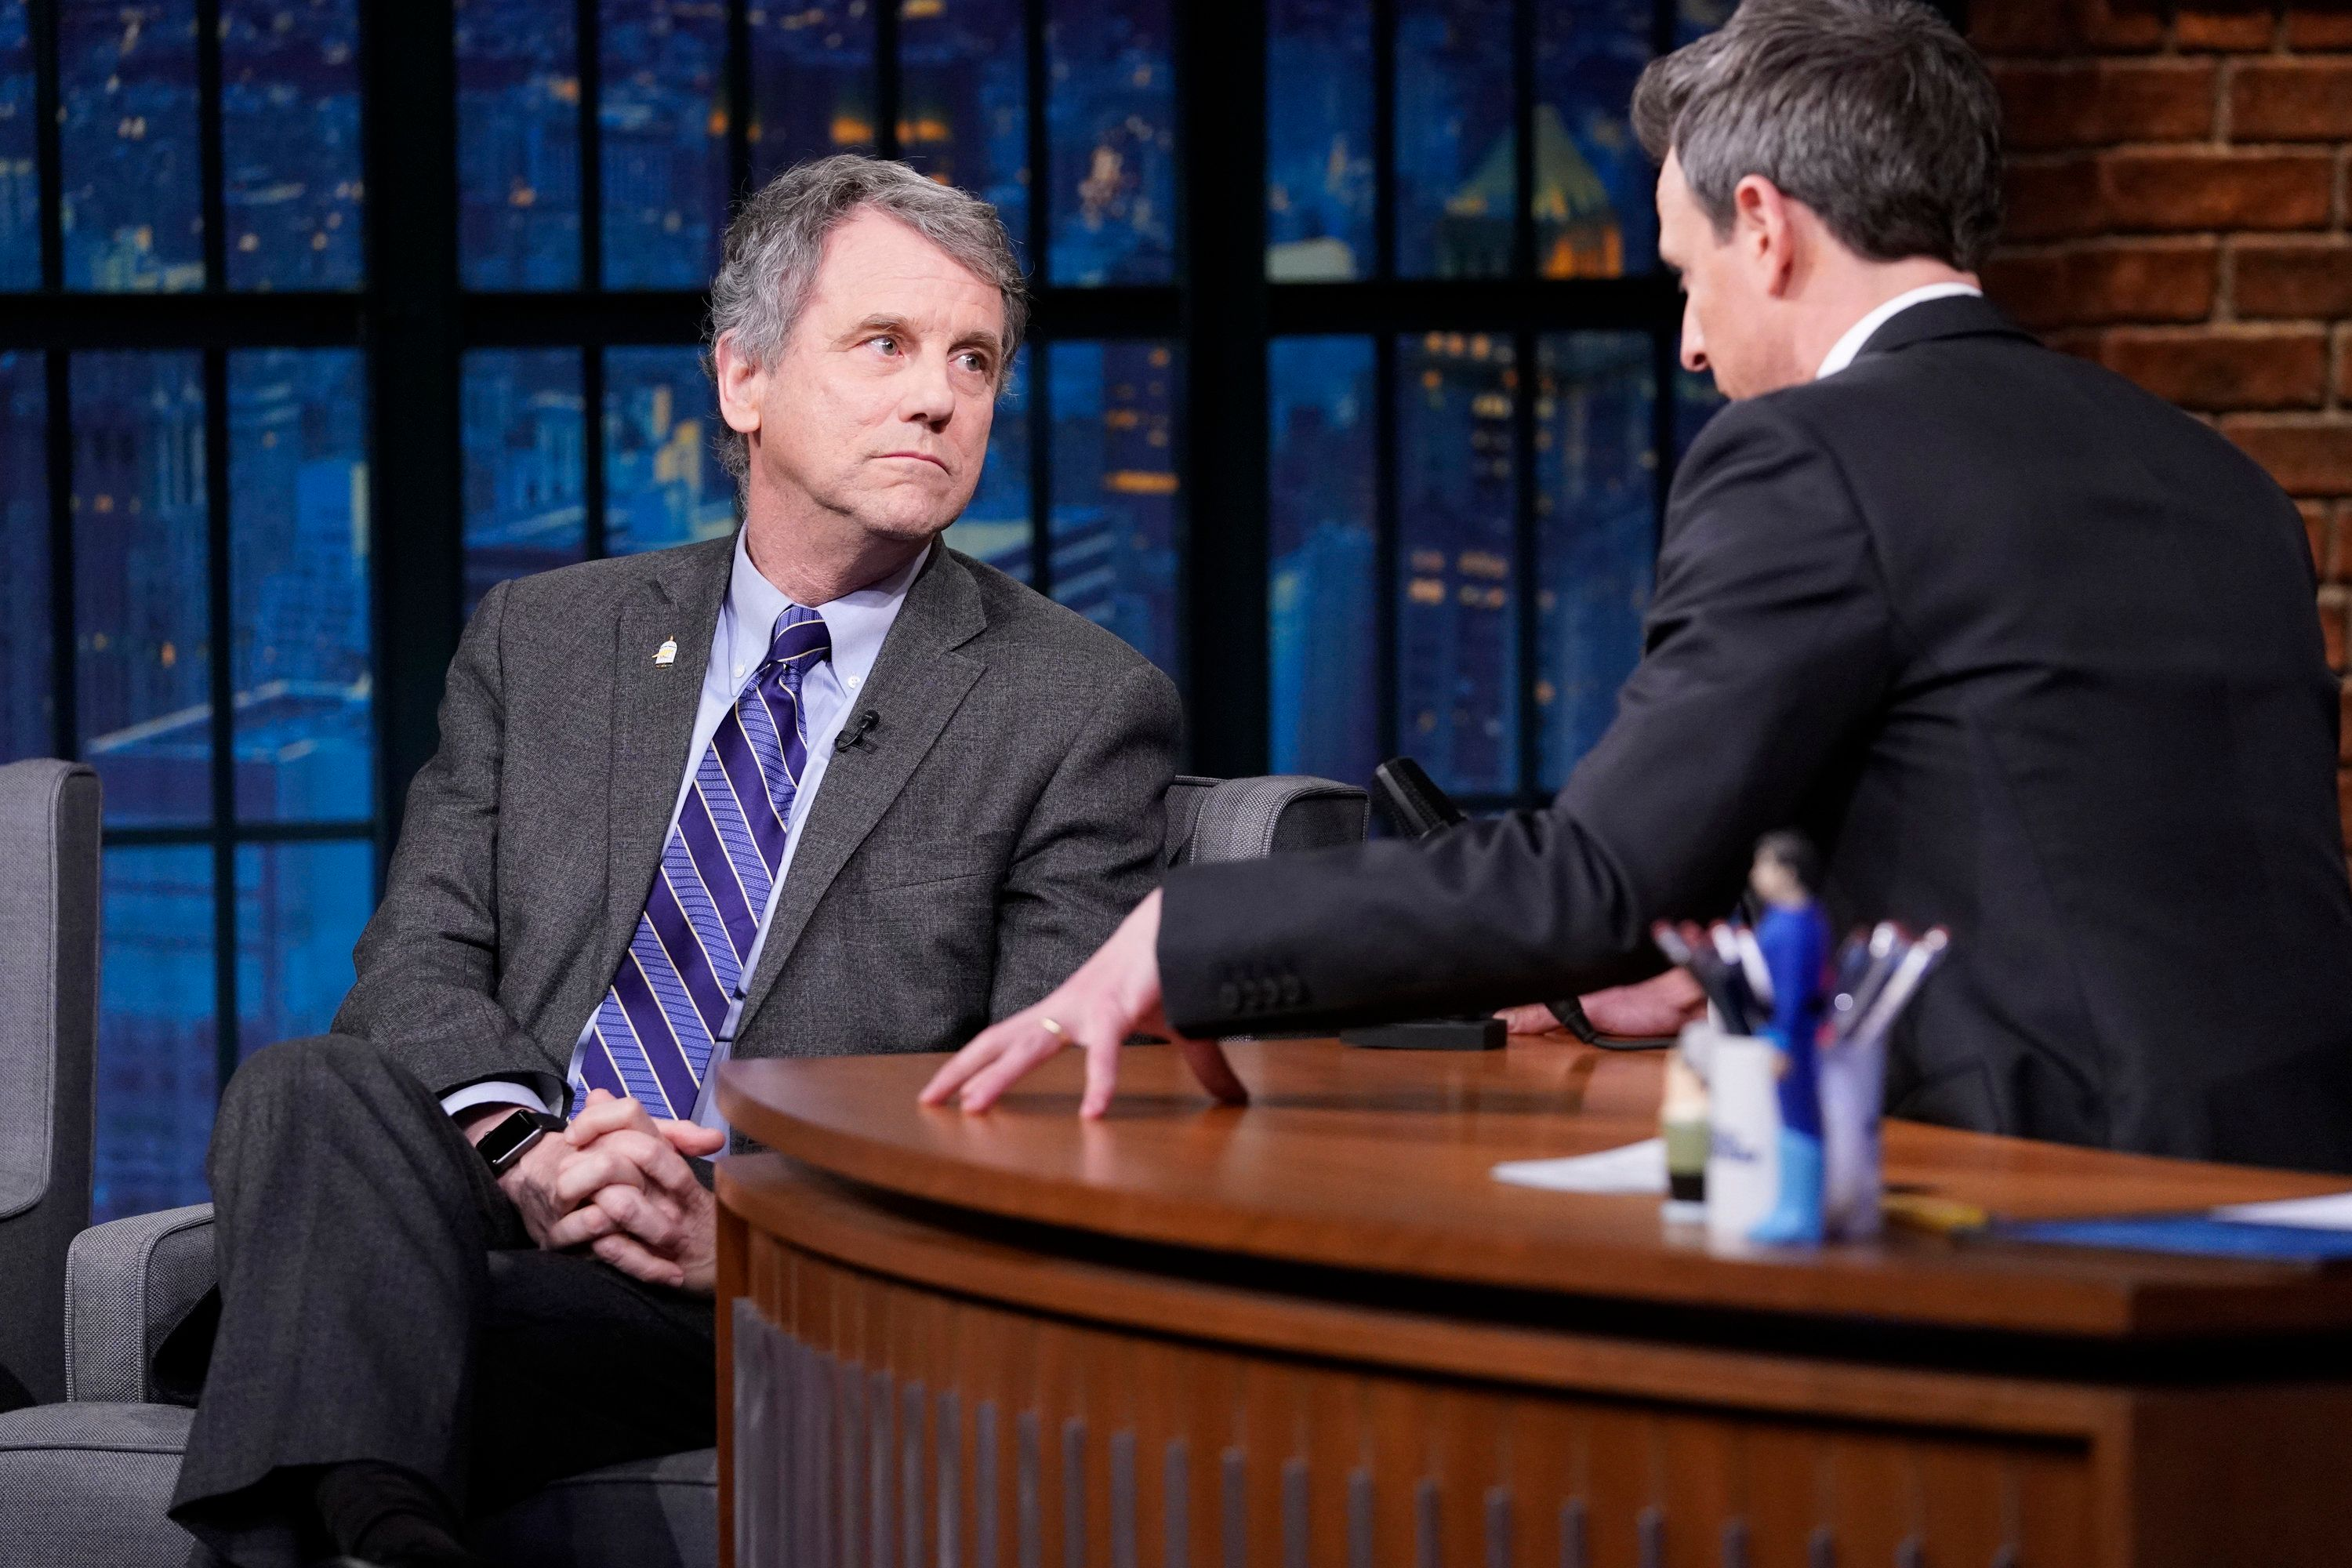 LATE NIGHT WITH SETH MEYERS -- Episode 787 -- Pictured: (l-r) Senator Sherrod Brown during an interview with host Seth Meyers on January 23, 2019 -- (Photo by: Lloyd Bishop/NBC/NBCU Photo Bank via Getty Images)